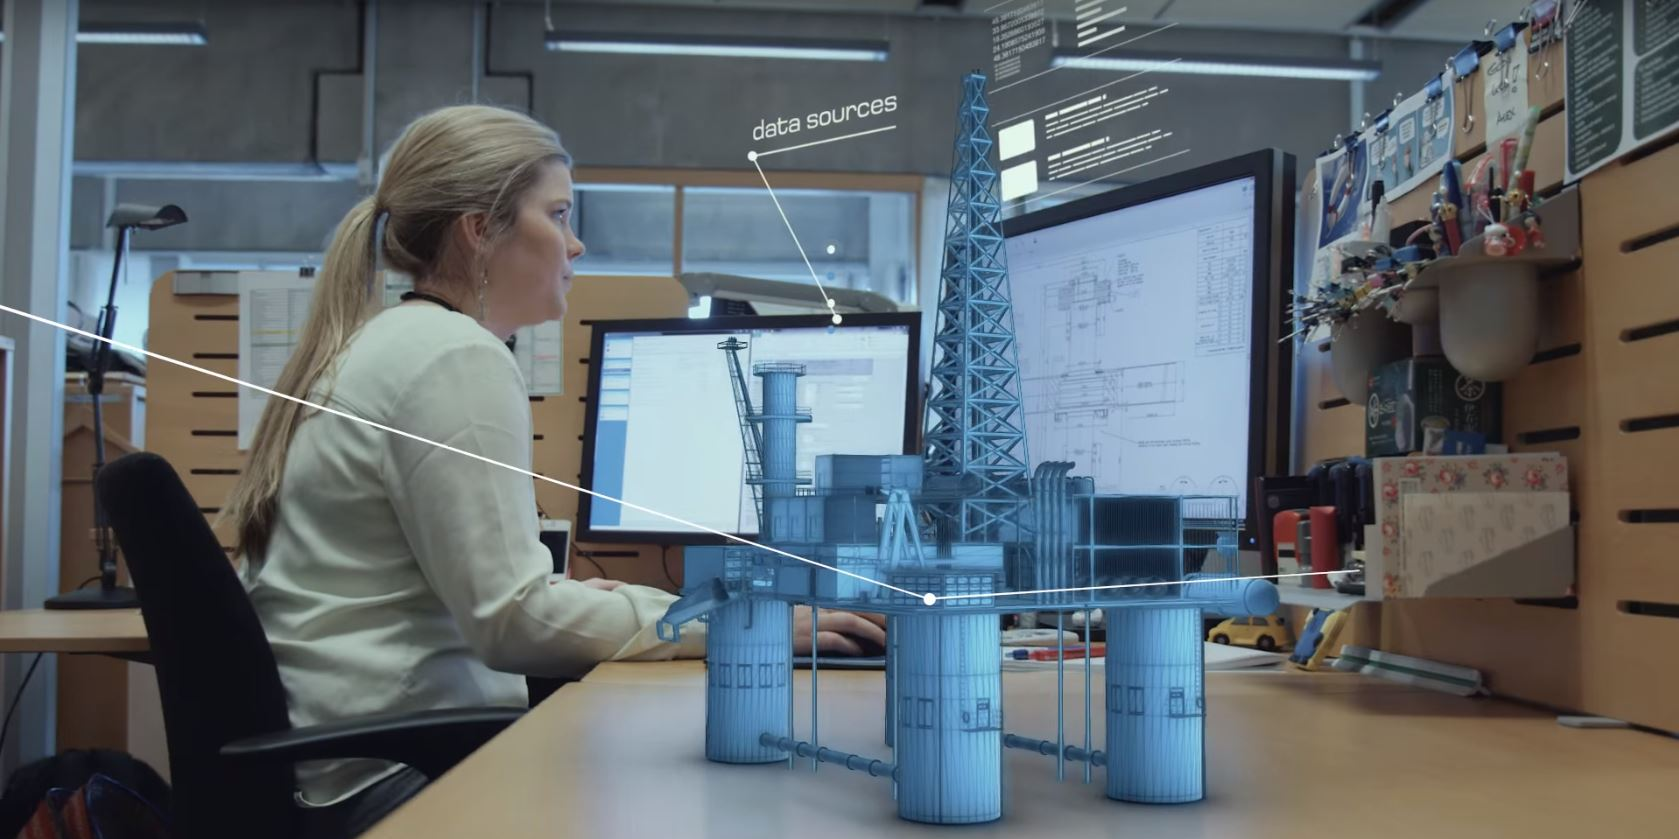 Digital twin on desk with woman